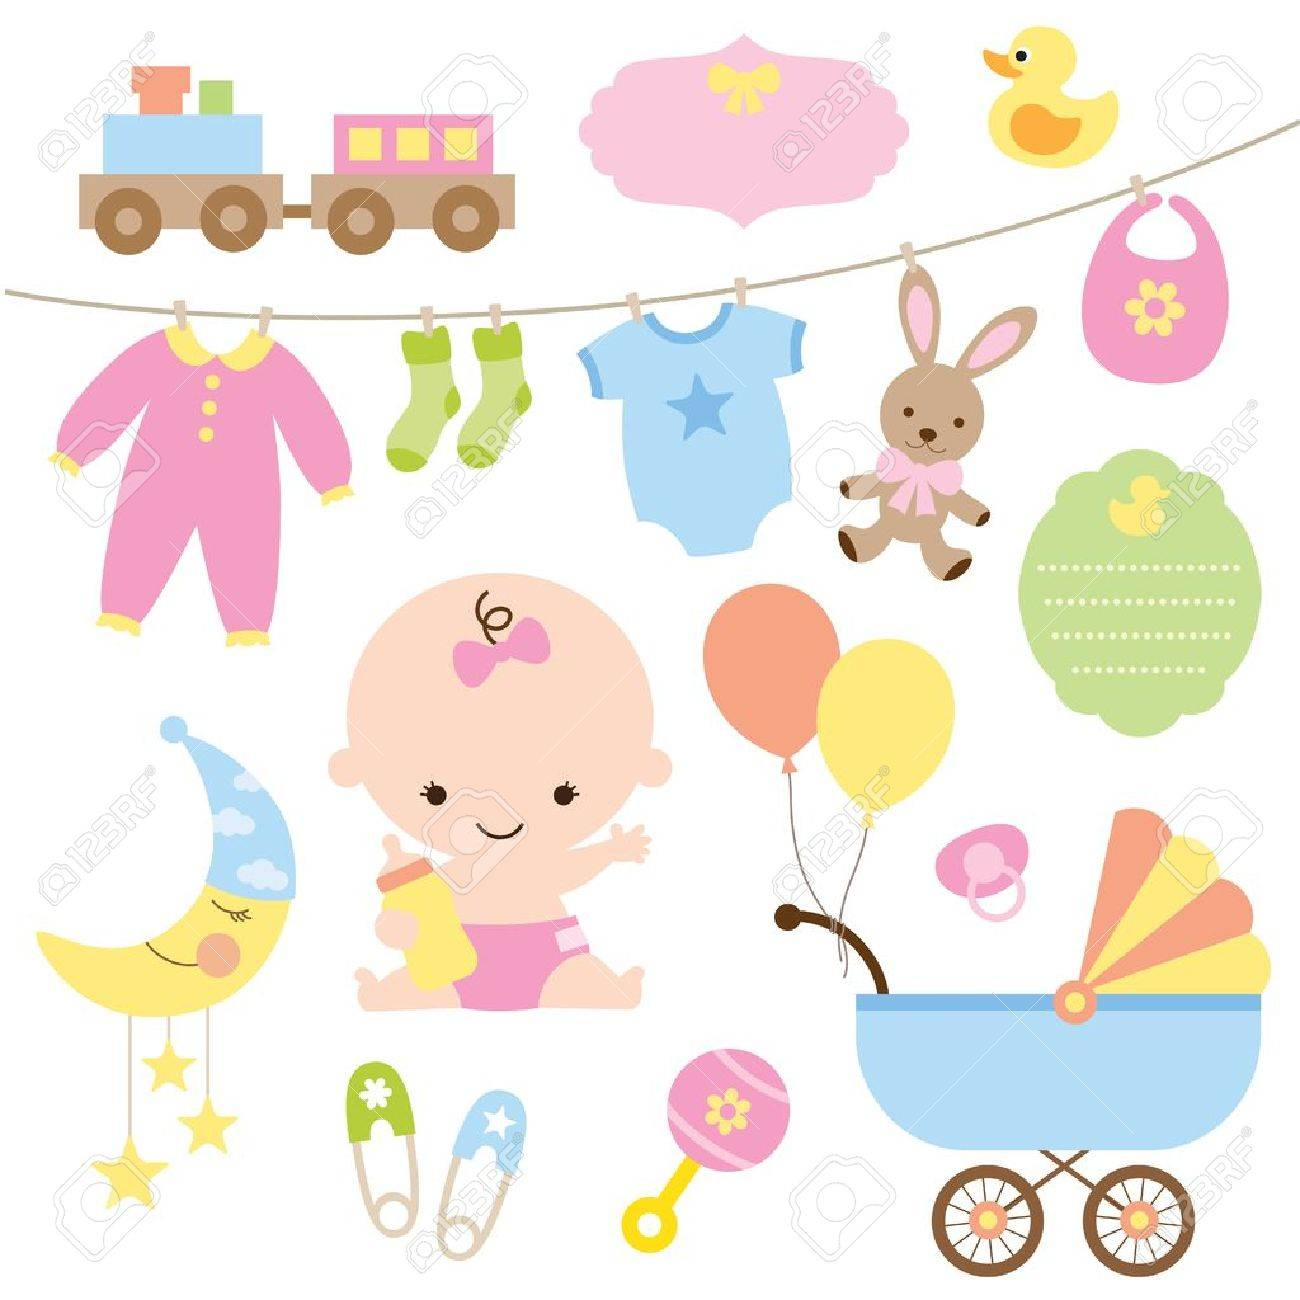 Vector illustration of baby and related items - 20562079